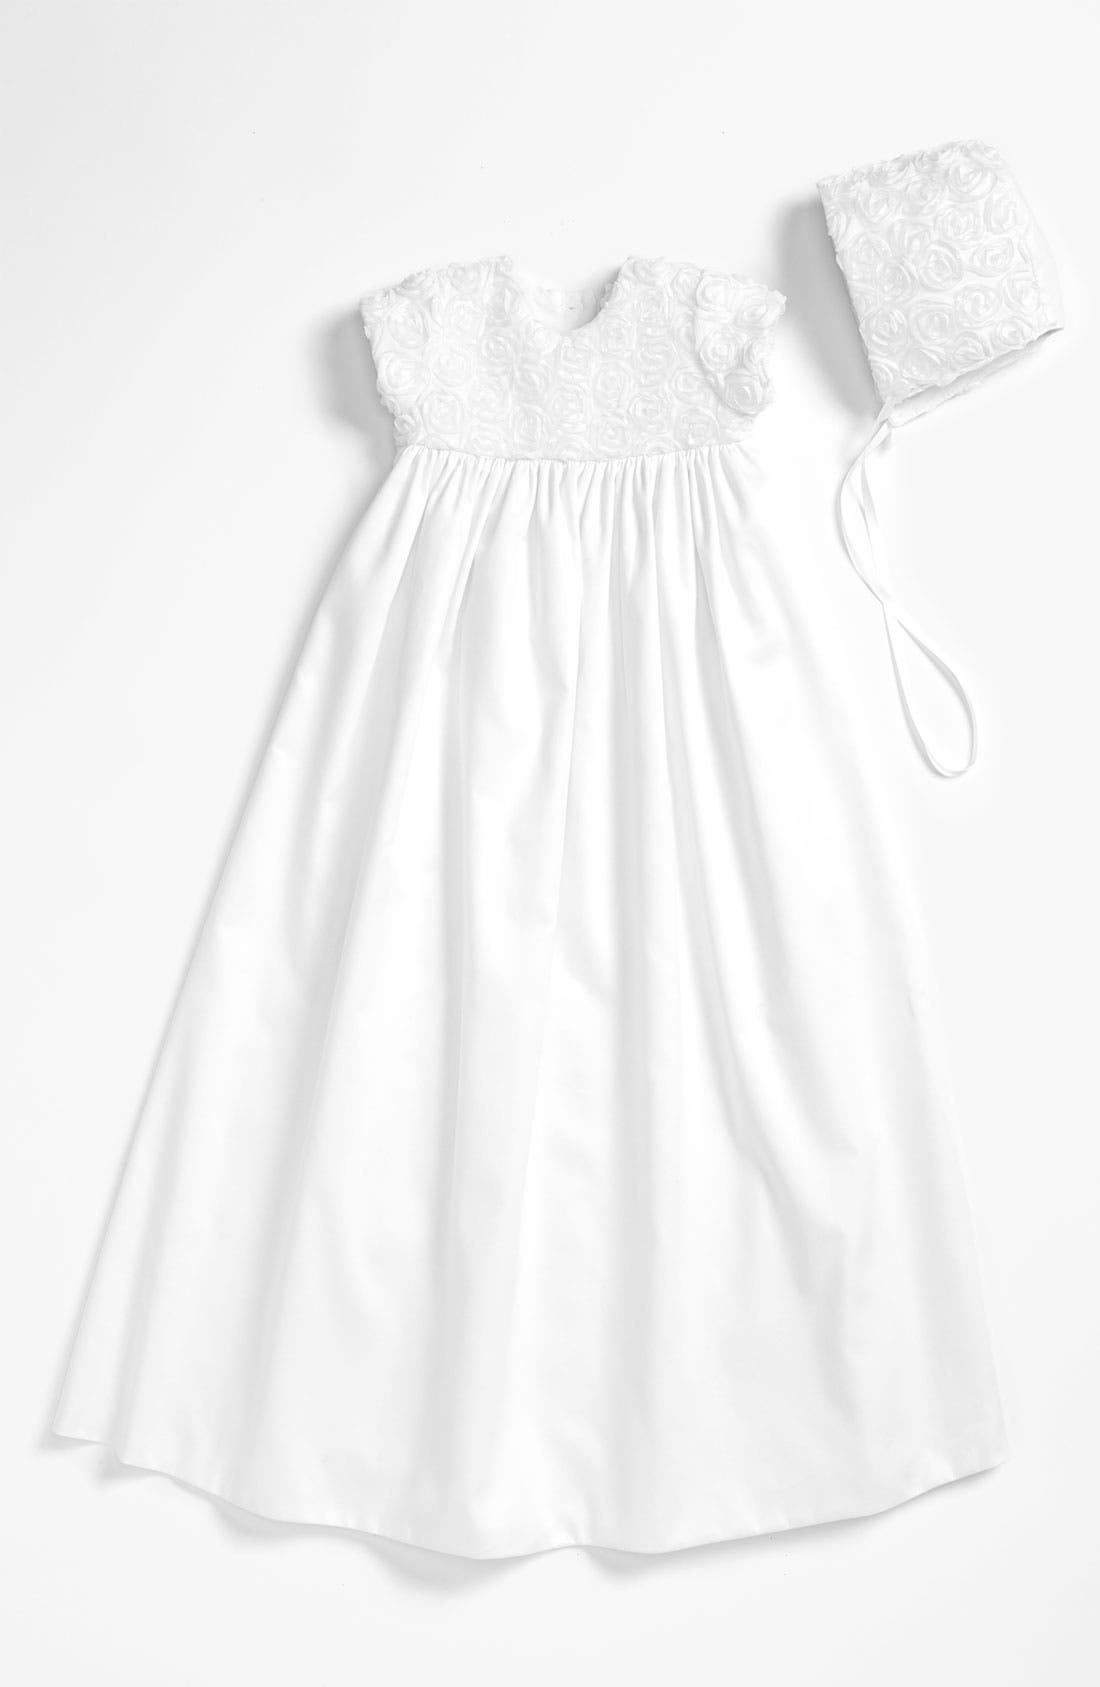 Alternate Image 1 Selected - Little Things Mean a Lot Rosette Gown & Bonnet (Baby)